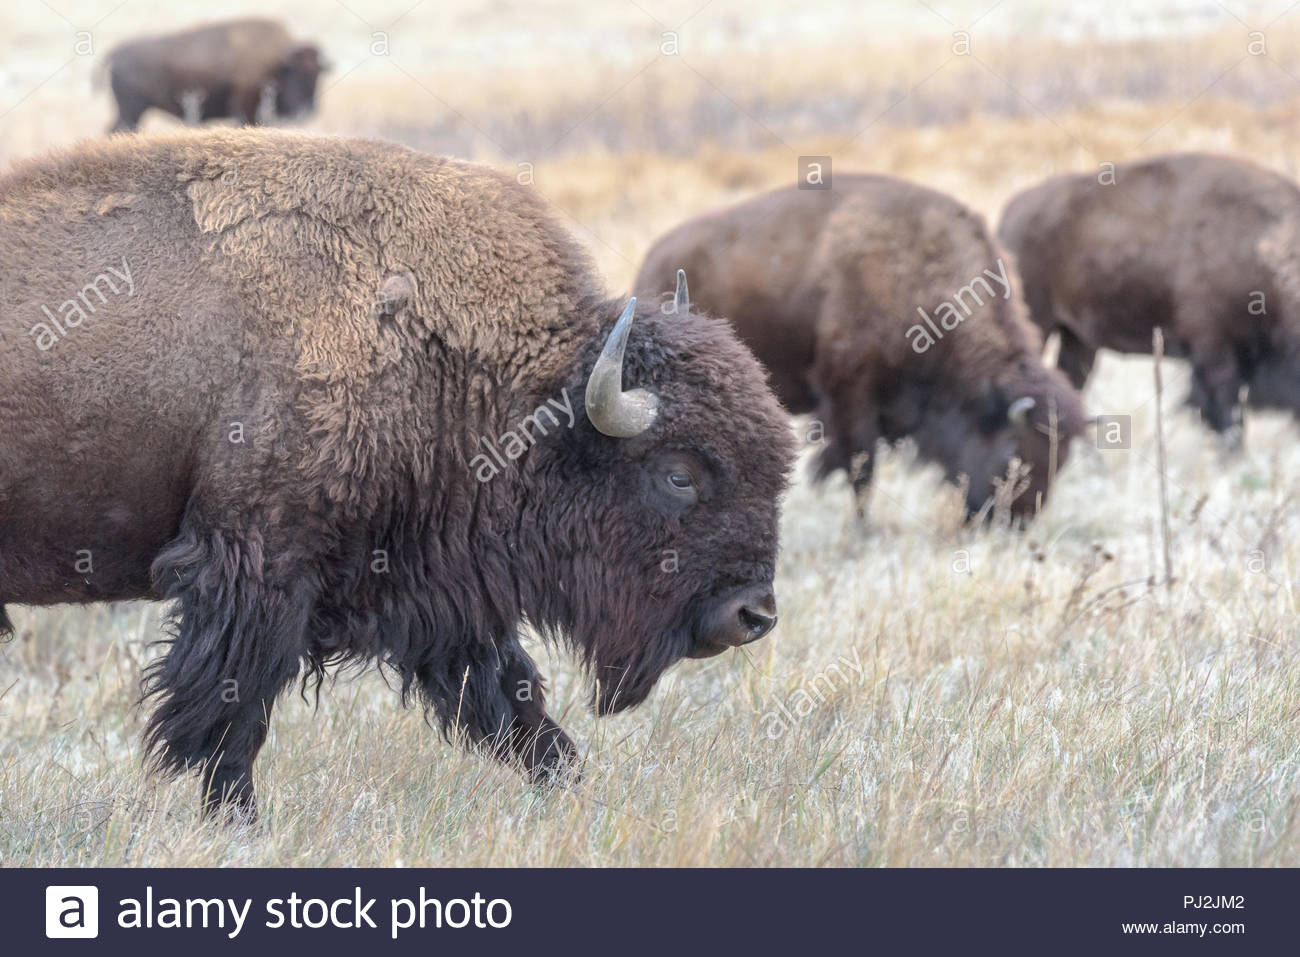 Buffalo Bison Skull Stock Photos & Buffalo Bison Skull Stock Images ...